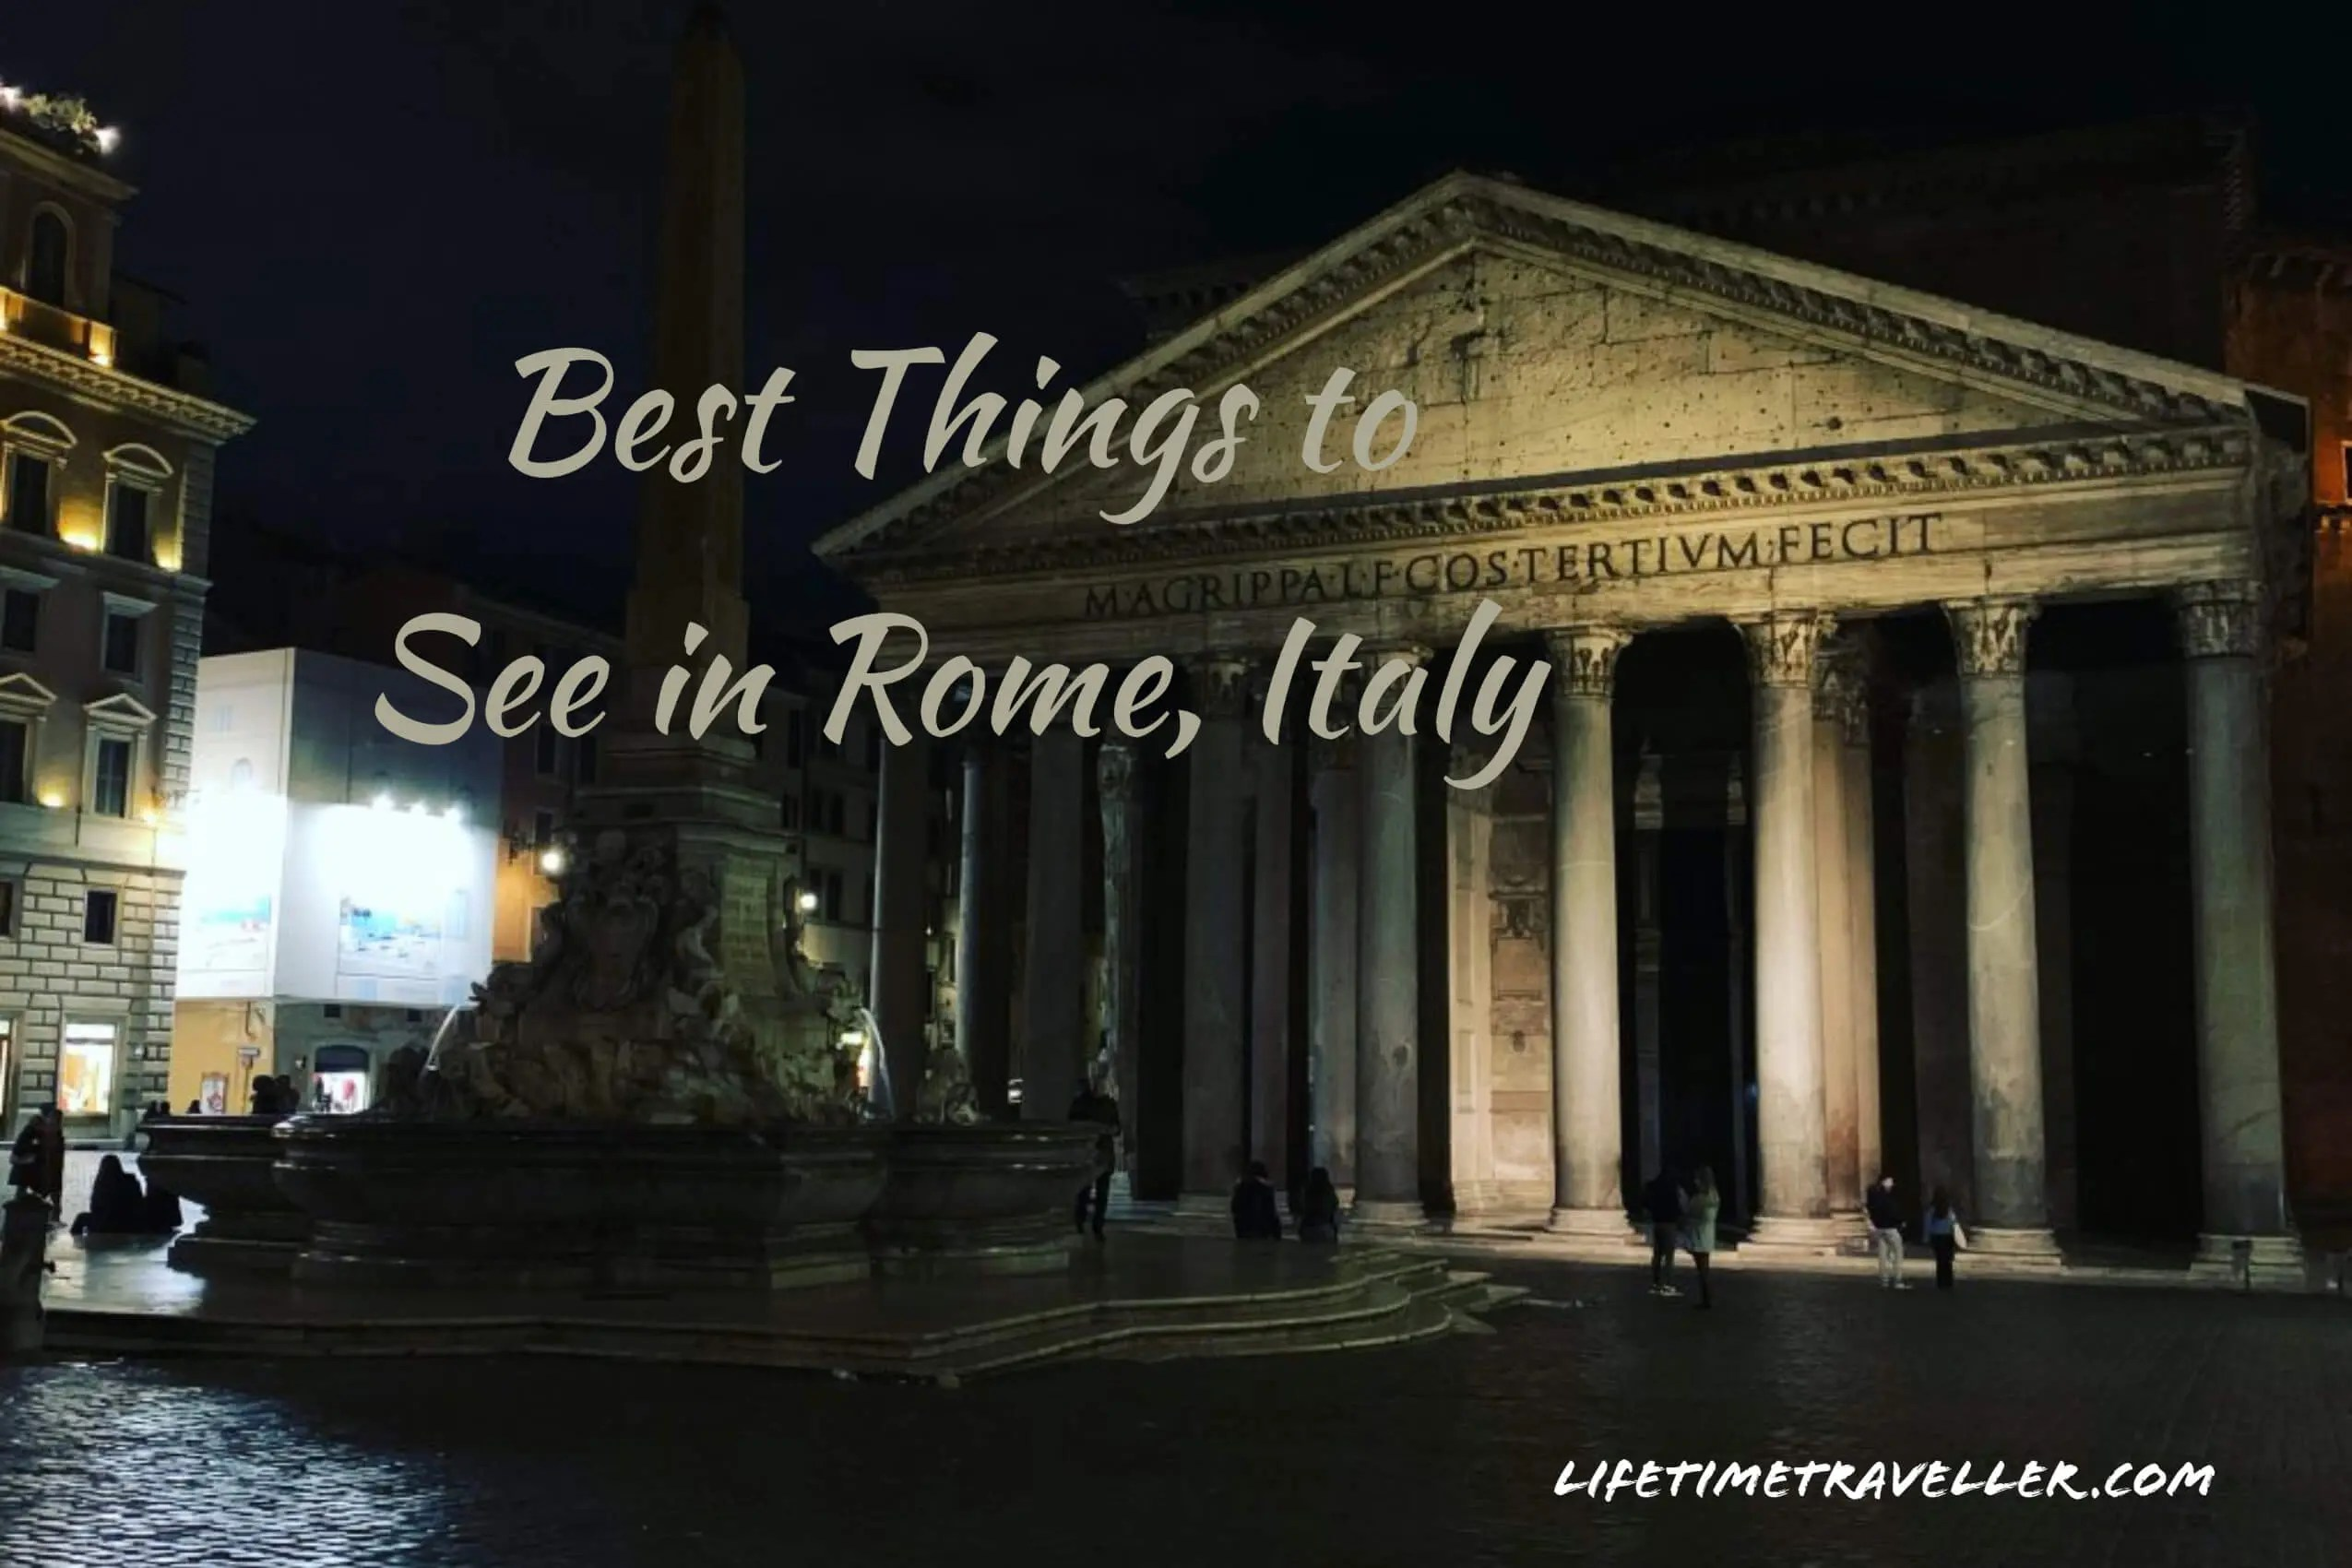 10 Best Things to See in Rome Italy by Lifetime Traveller